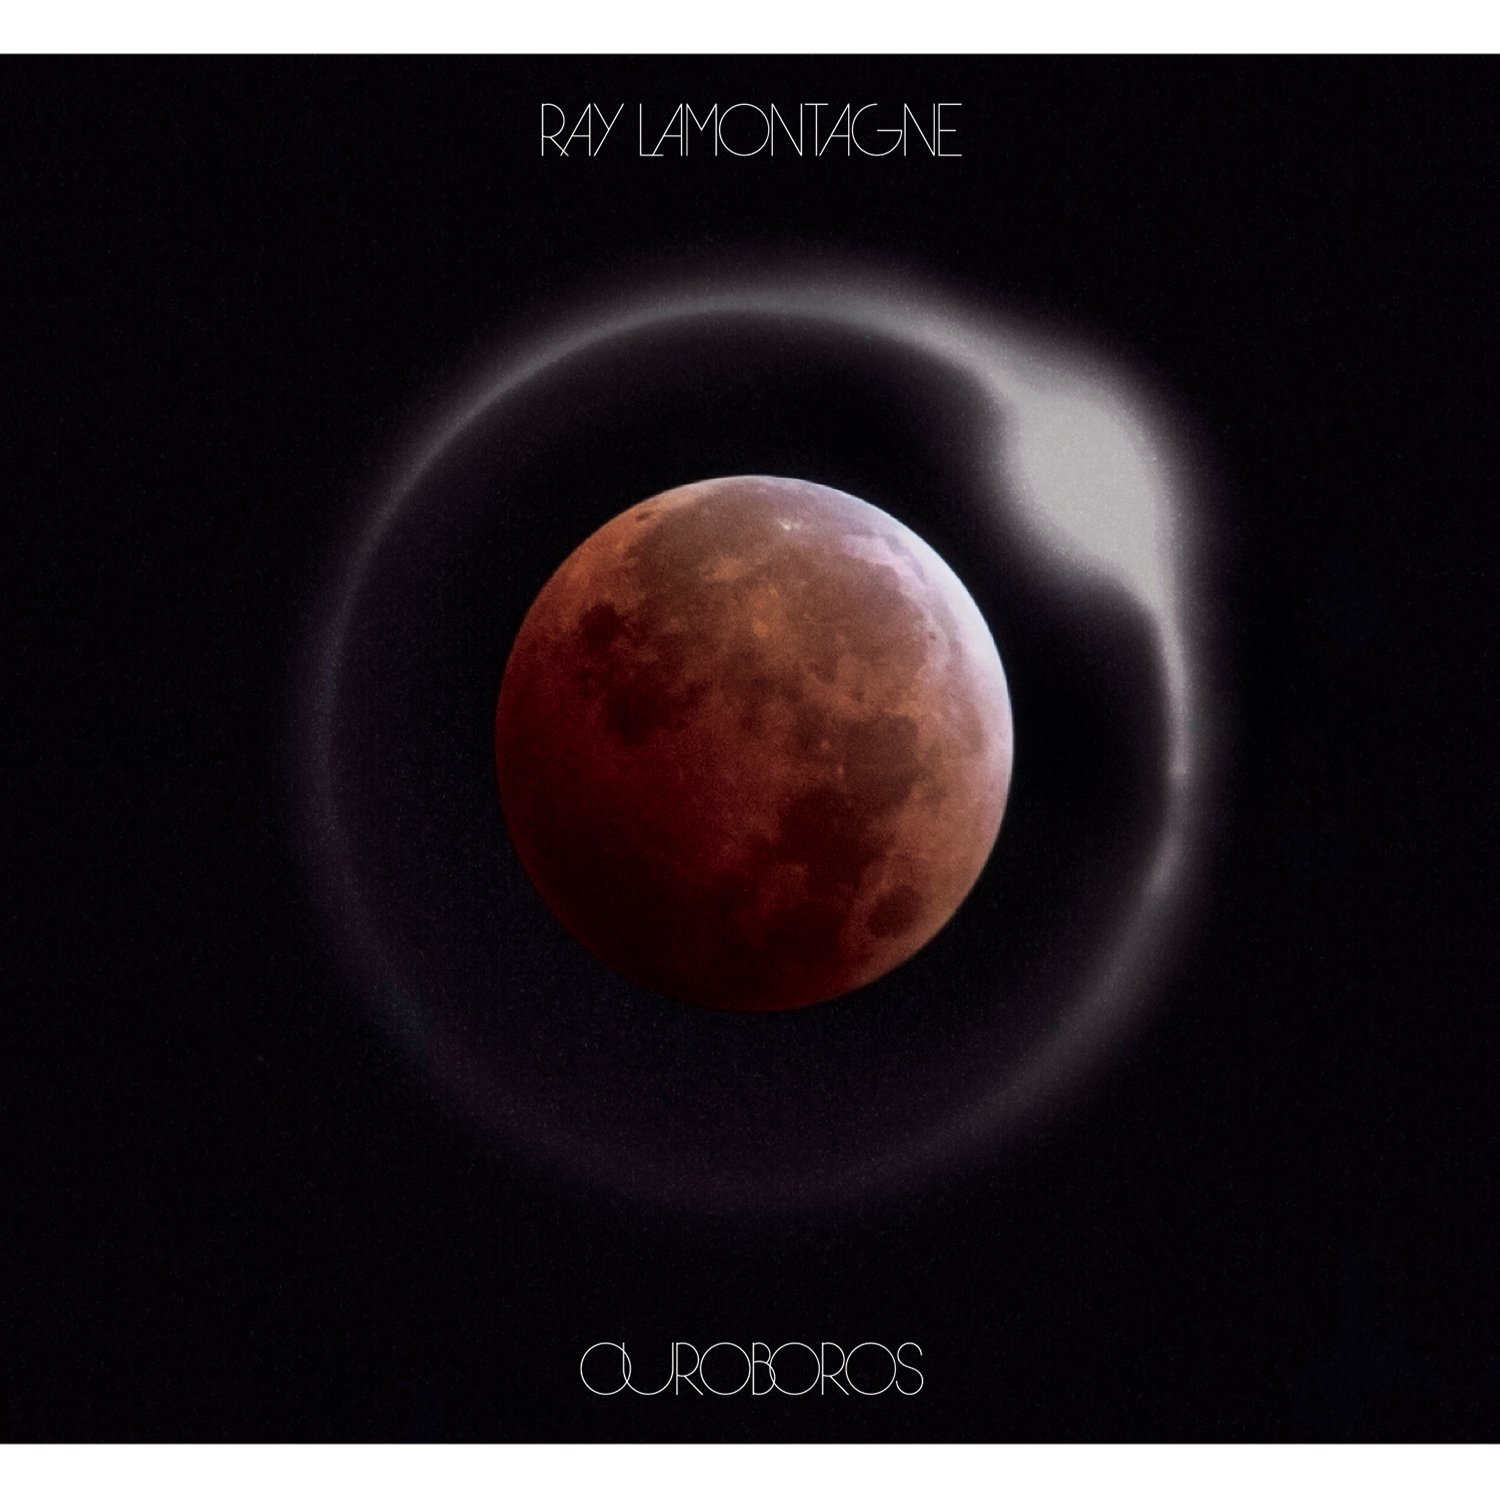 Ray LaMontagne's new album quite literally came to him in a dream. Produced by Jim James, it sounds even dreamier on this amber colored, double LP, which is limited to a mere 1,500 copies.